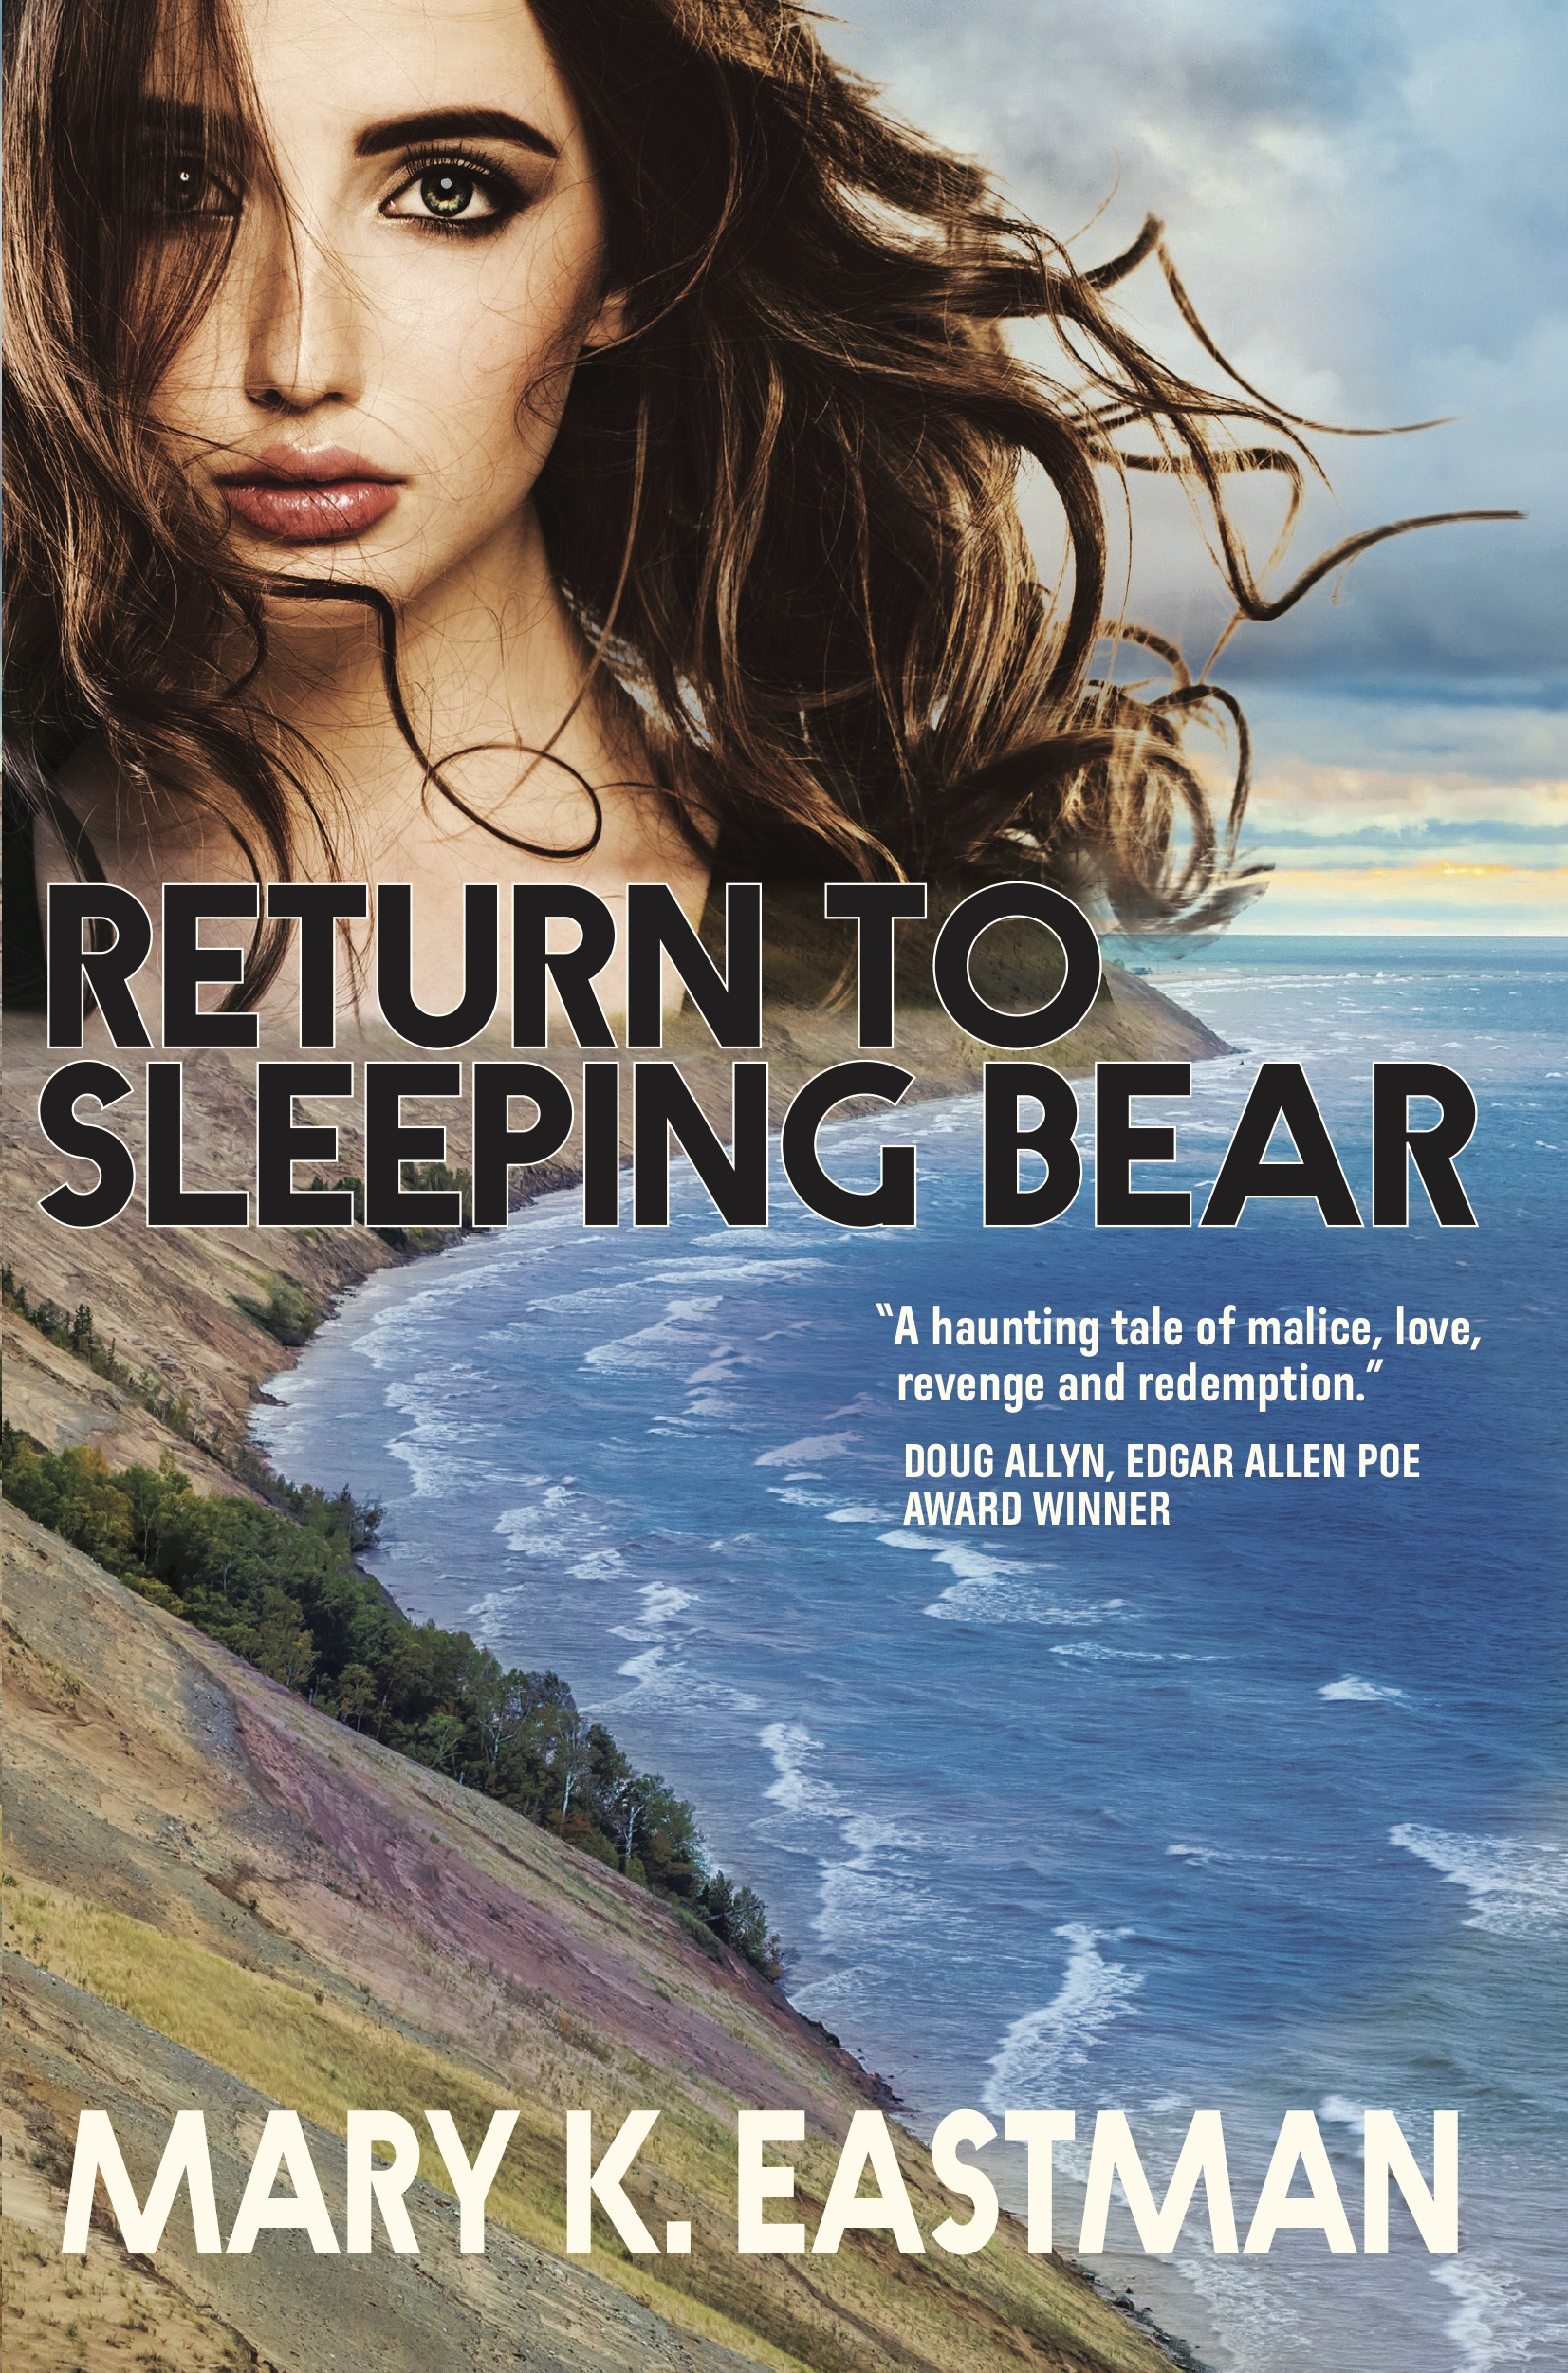 - Plagued by unanswered questions about her origins, Bree is drawn to the Sleeping Bear Dunes area and moves there. She meets Denver and a relationship develops between them. She also meets a man claiming to be her birth father. Things seem to be going great.One day, while on Lake Michigan with a storm brewing, Bree realizes, too late, that things aren't always as they seem. She finds herself and those she loves in a battle for their lives. Survival seems to be just out of reach.More about this authorBuy the book on Amazon